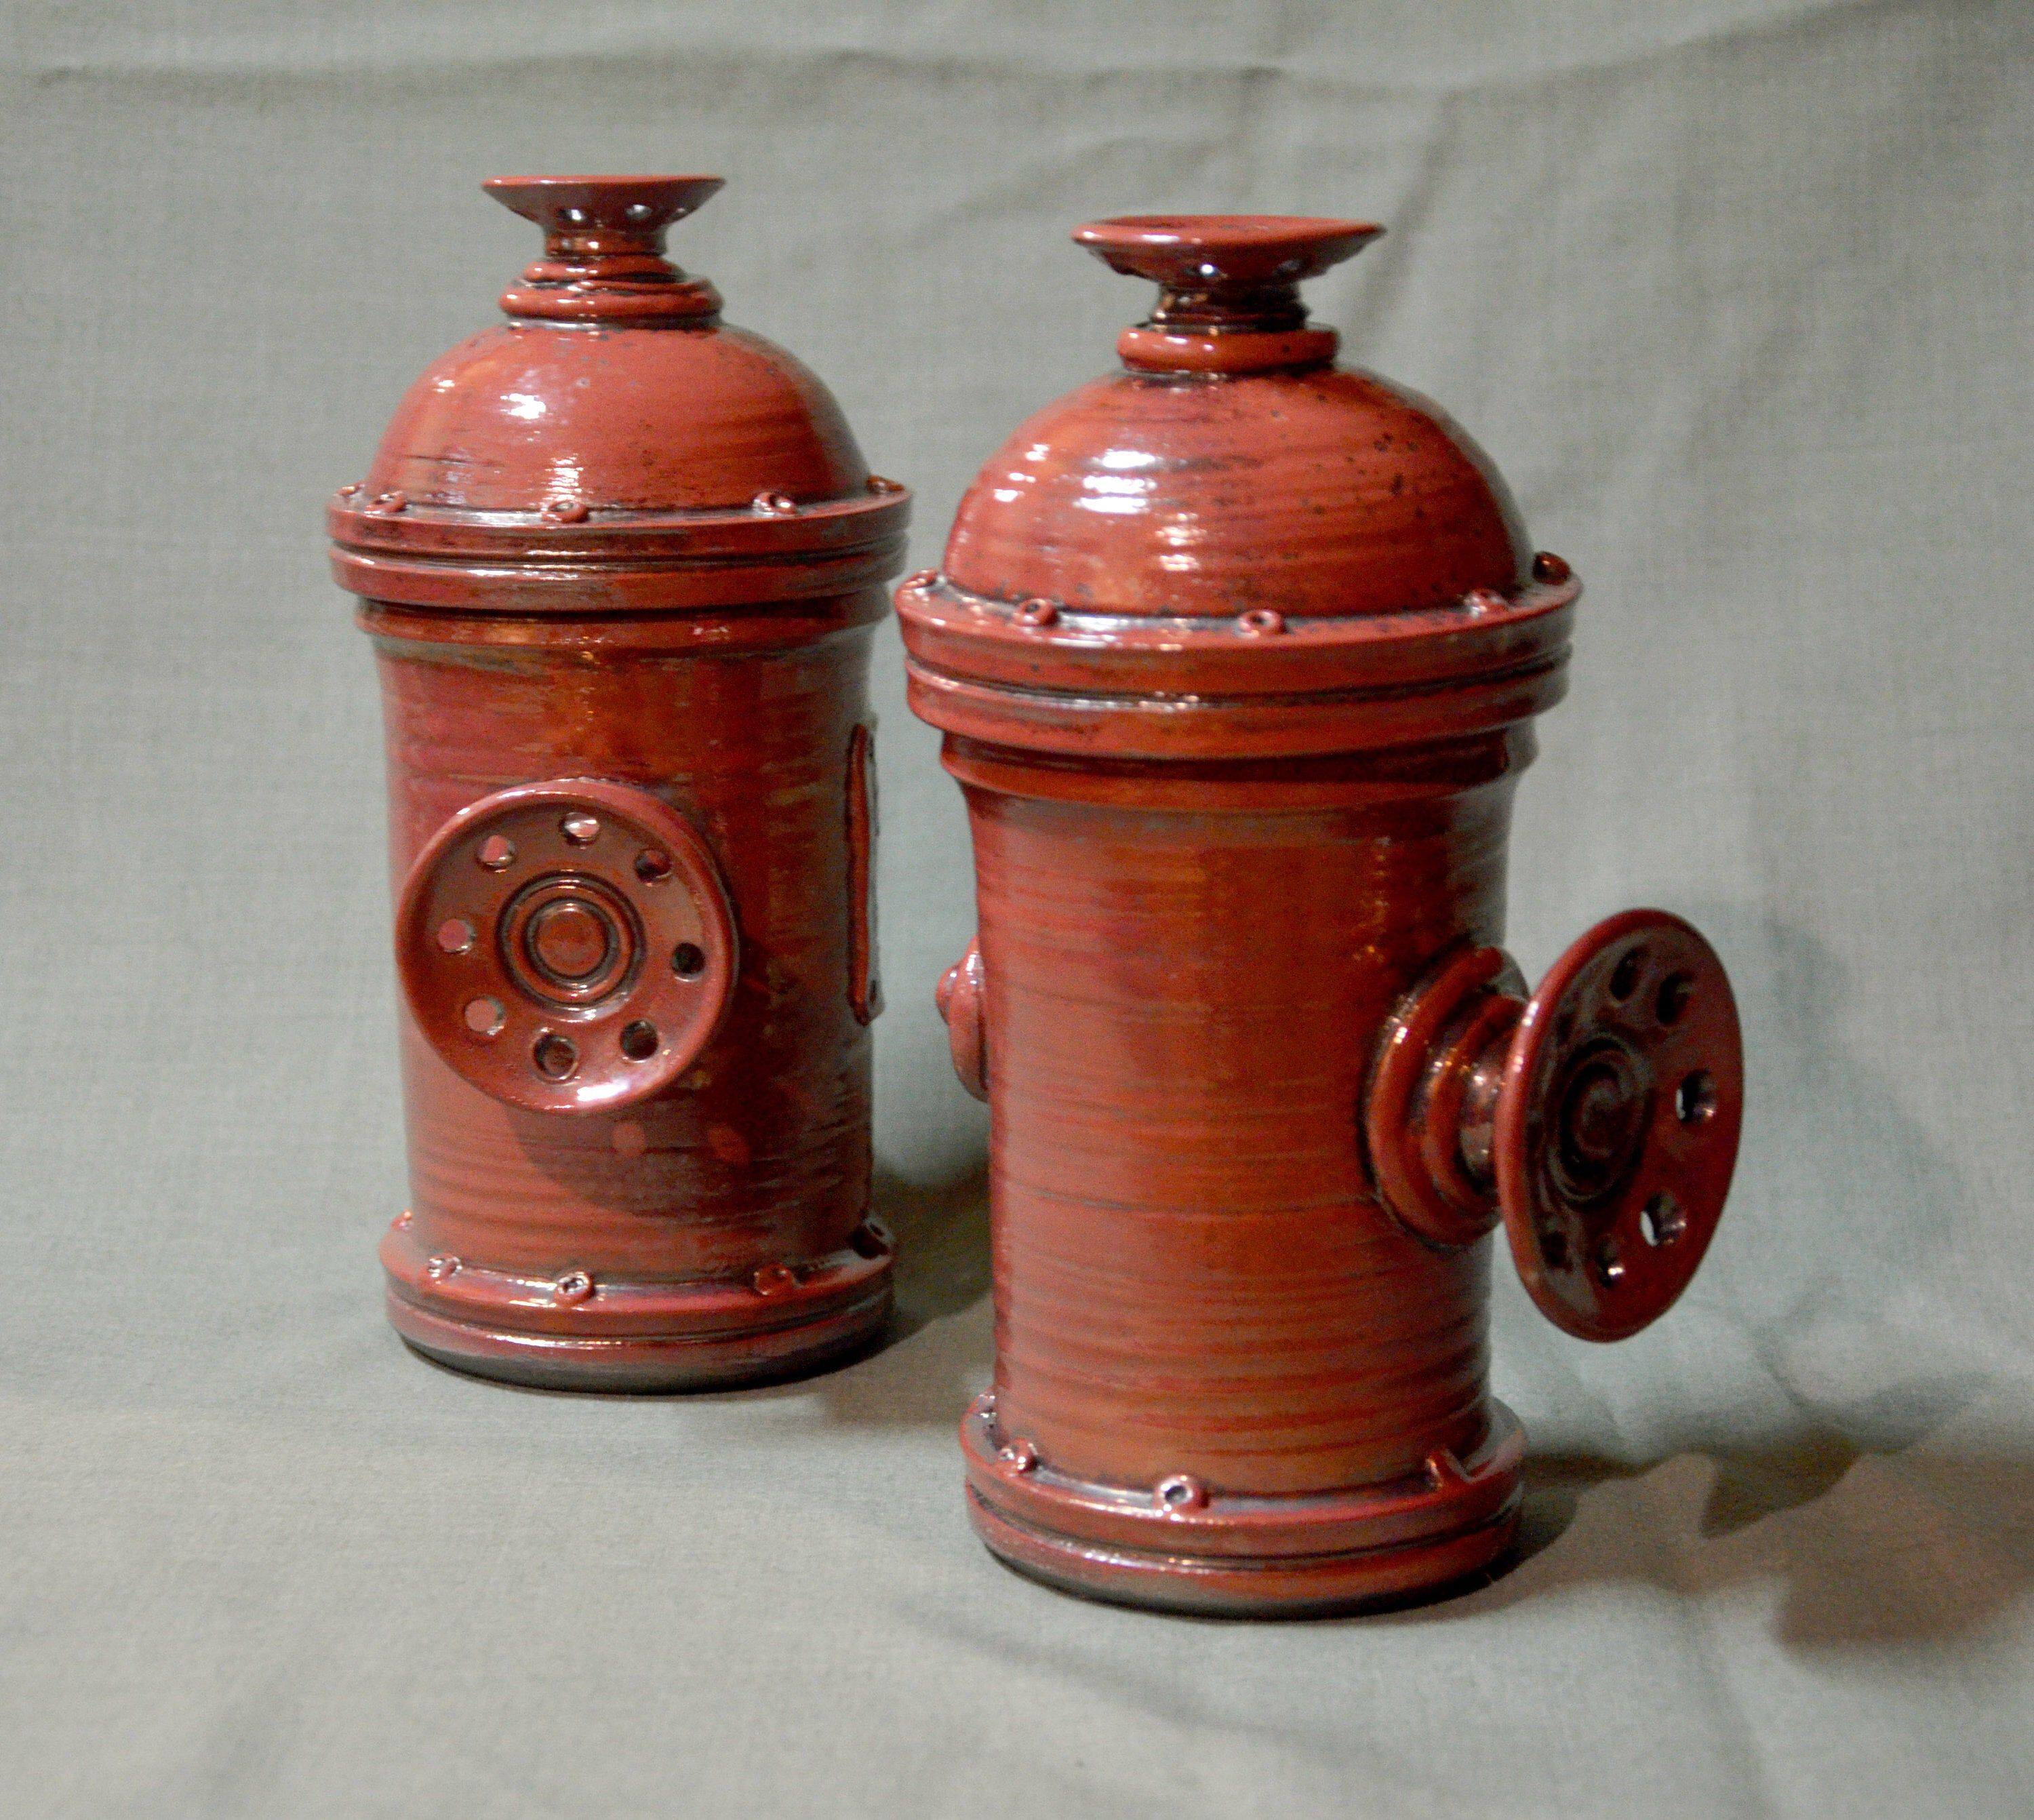 Excited to share this item from my #etsy shop: Gift for a Firefighter, Beer Mug, Red, fire Hydrant, Handmade, Pottery, for fireman, friend gift, free shipping #potterymug #art #ceramicmug #potteryart #beer #giftforher #momgift #redmug #housewarming